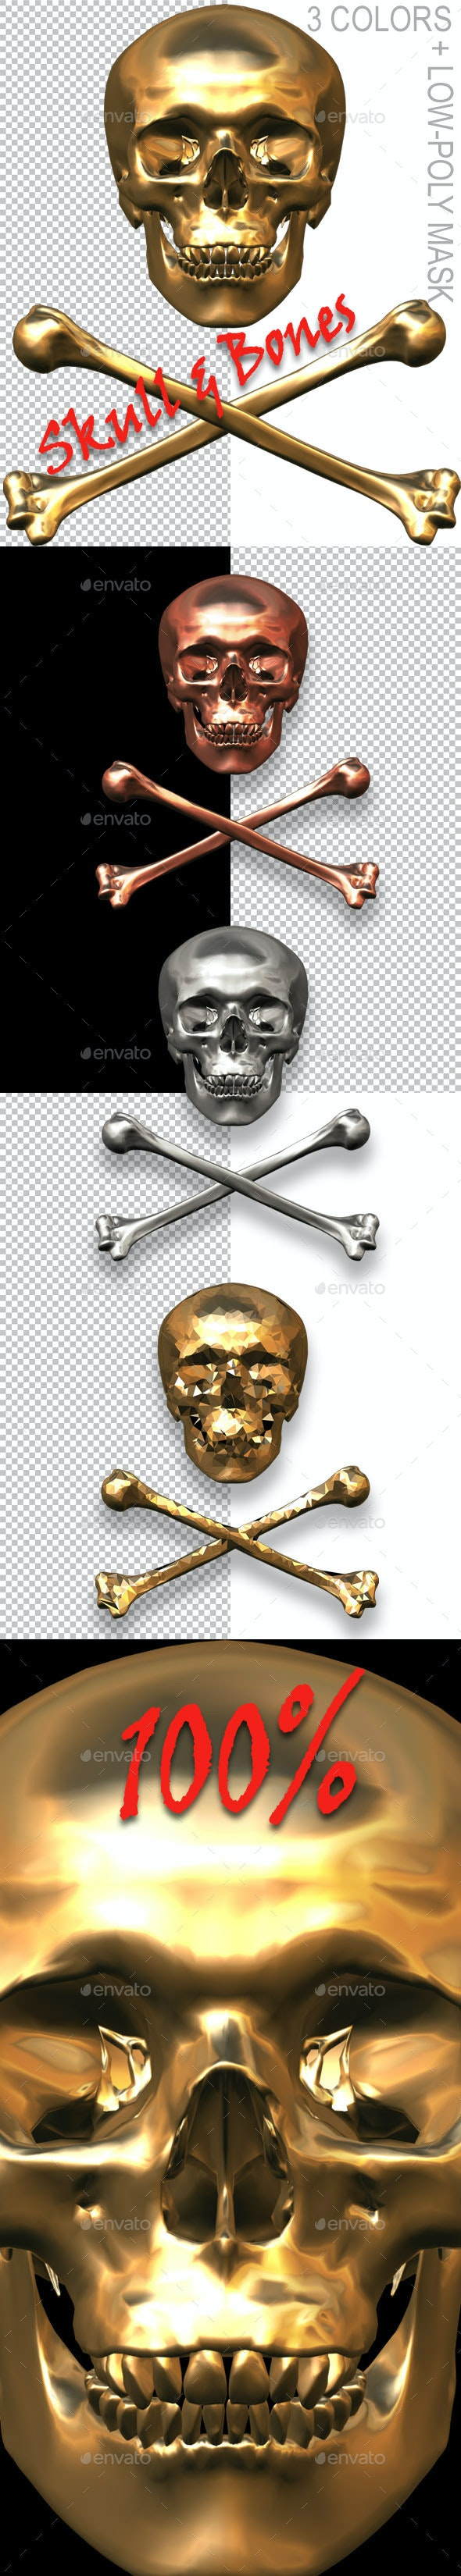 Skull And Crossed Bones - 3D Renders Graphics